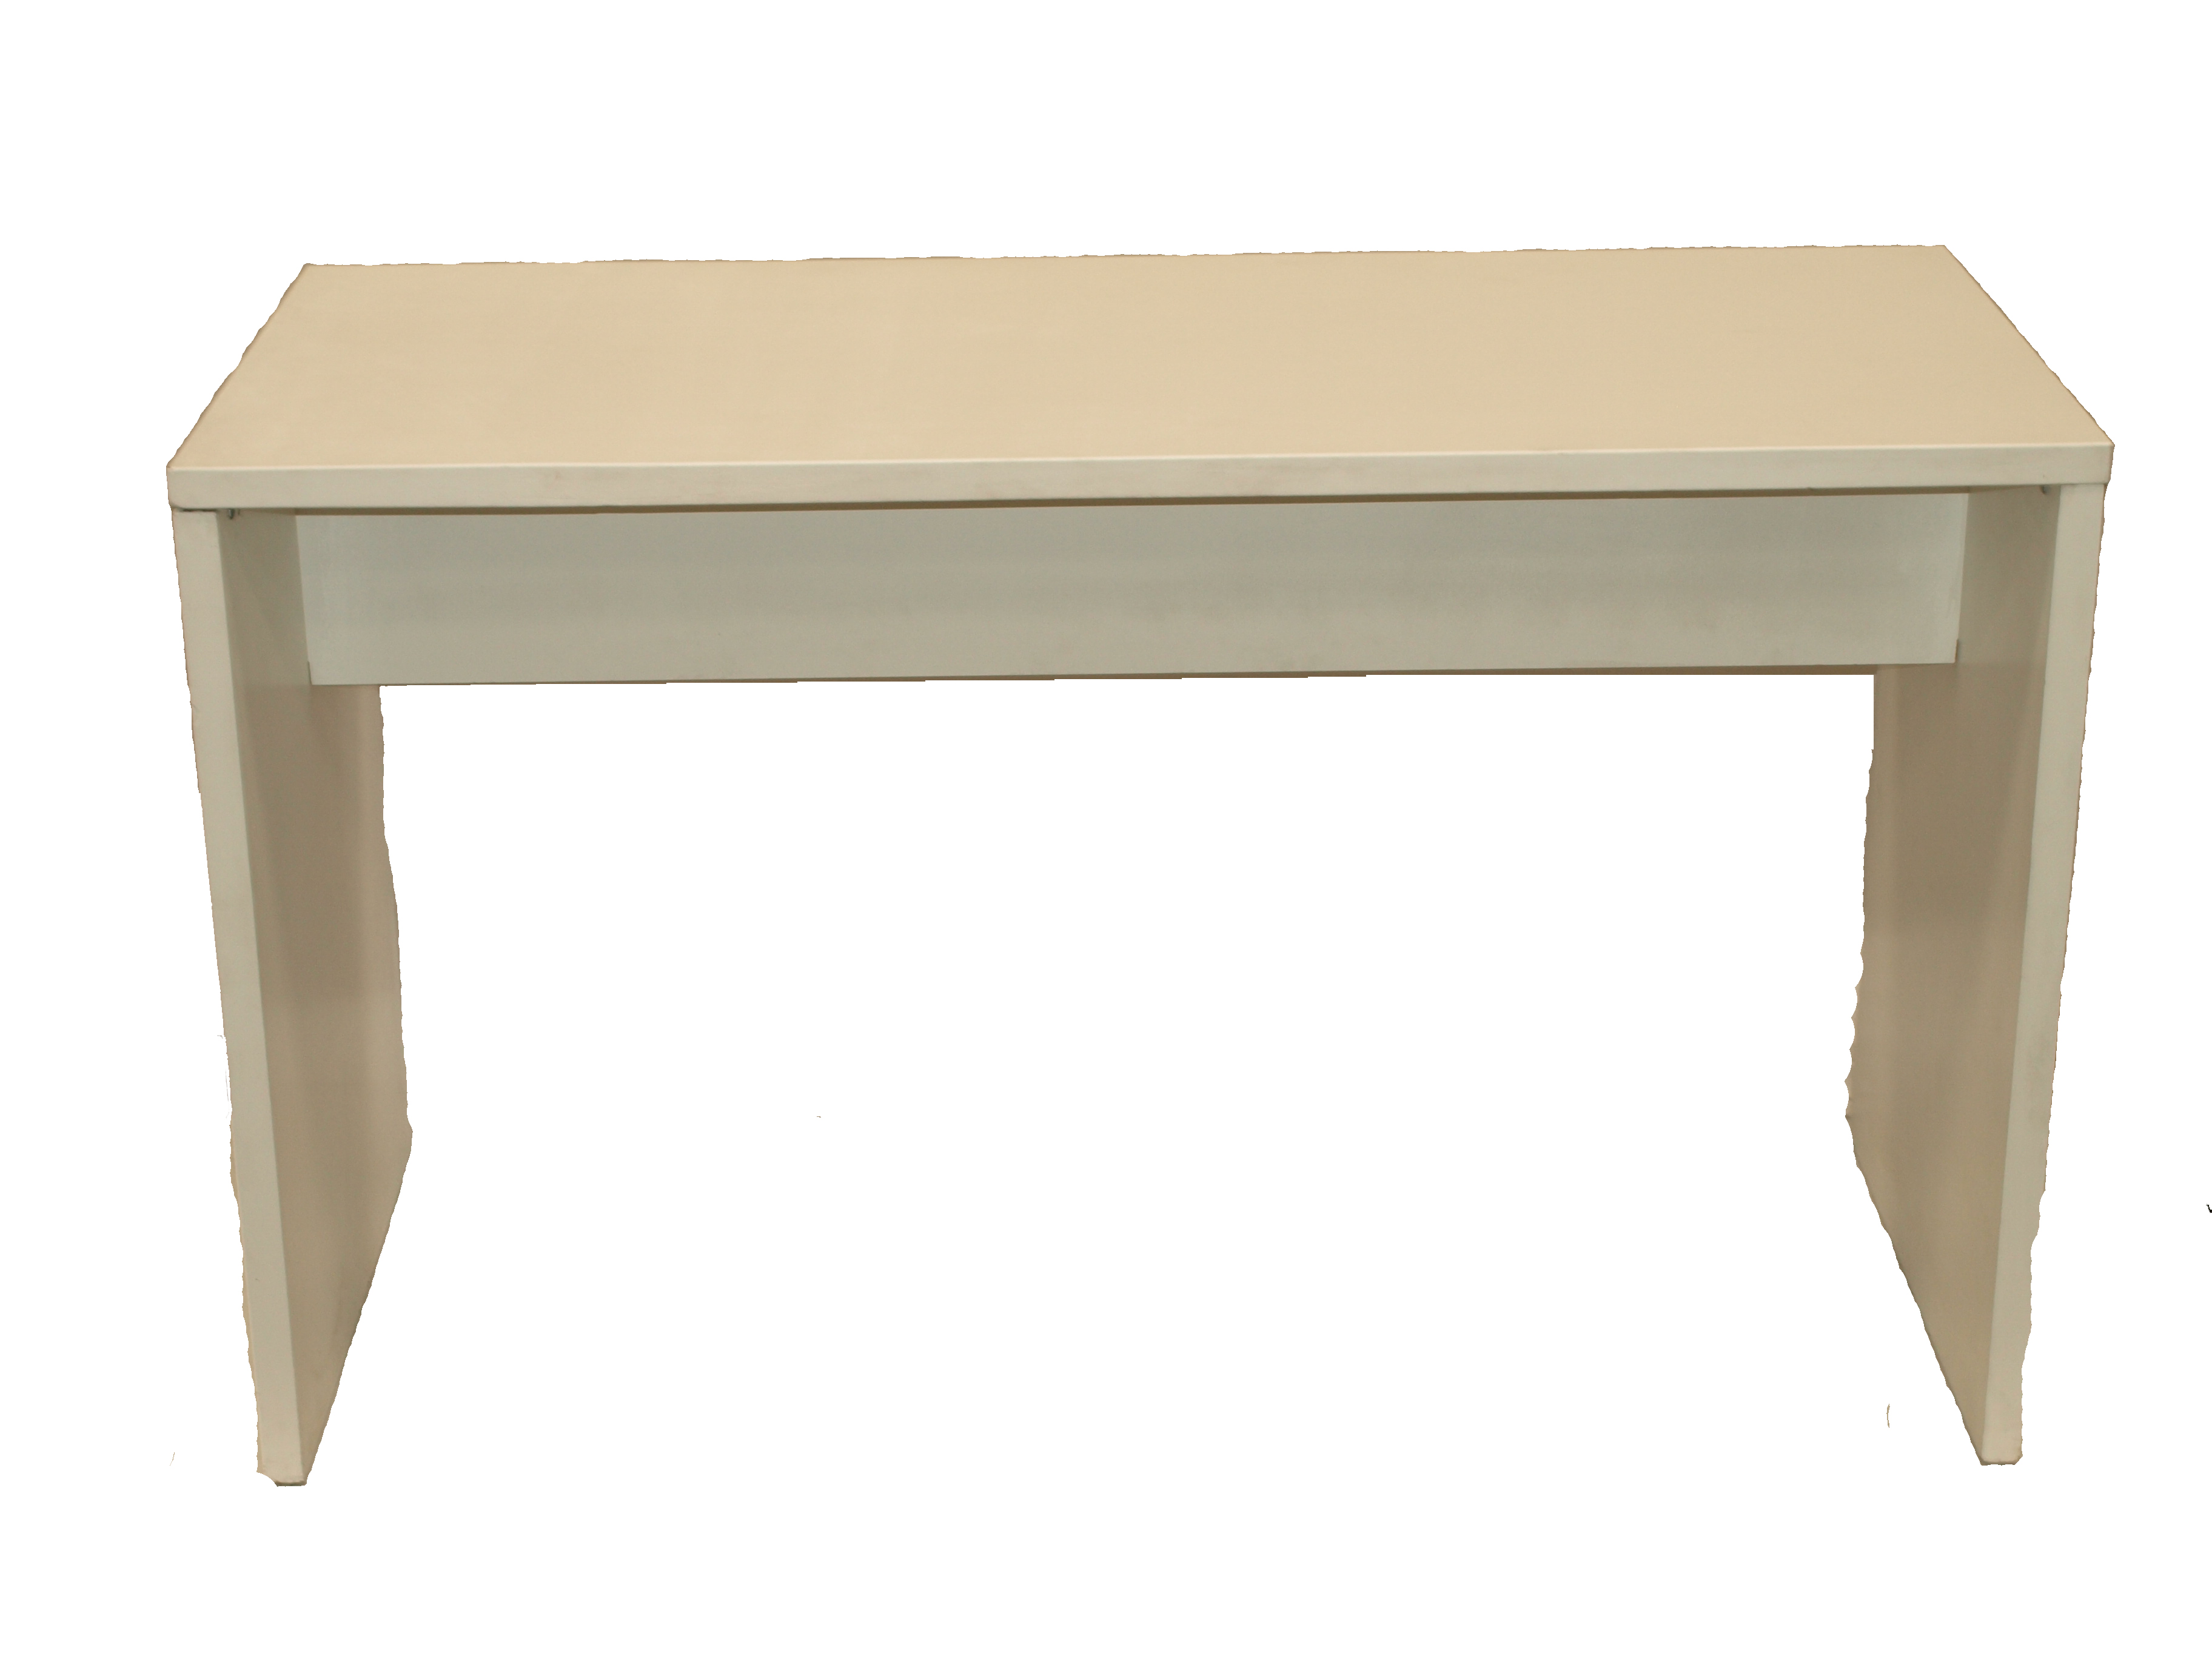 1.8m White High Table